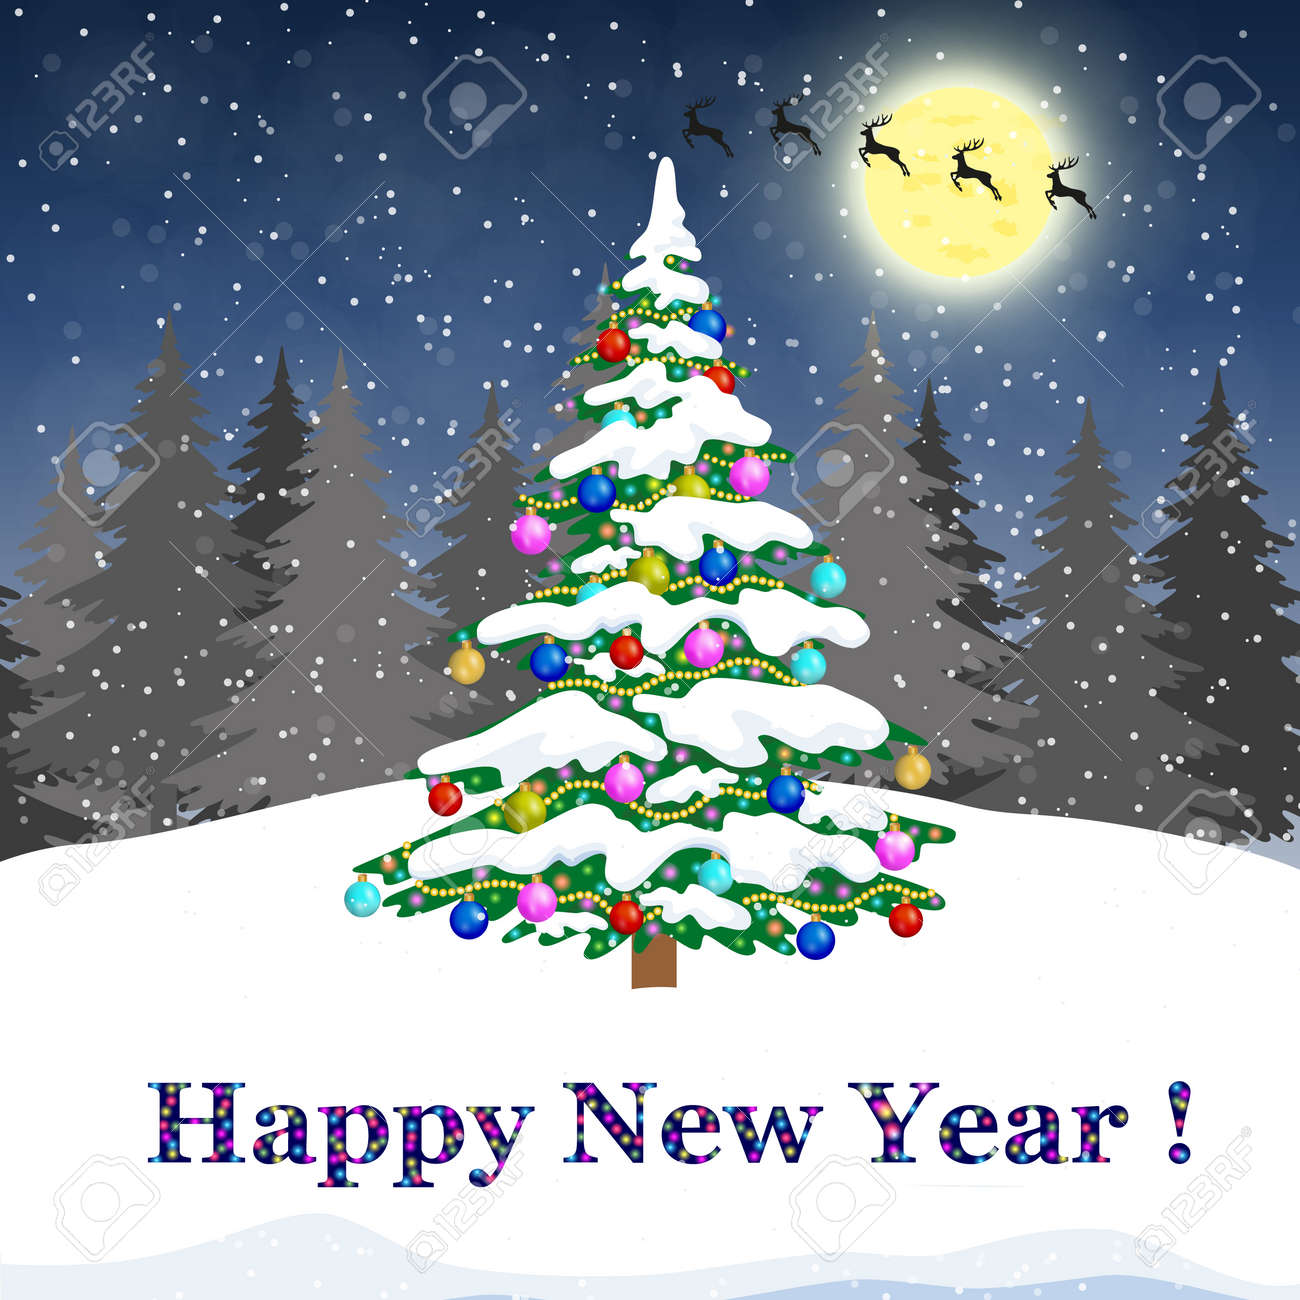 Mery Christmas.Christmas Tree With Colorful Baubles Illustration Festive Background